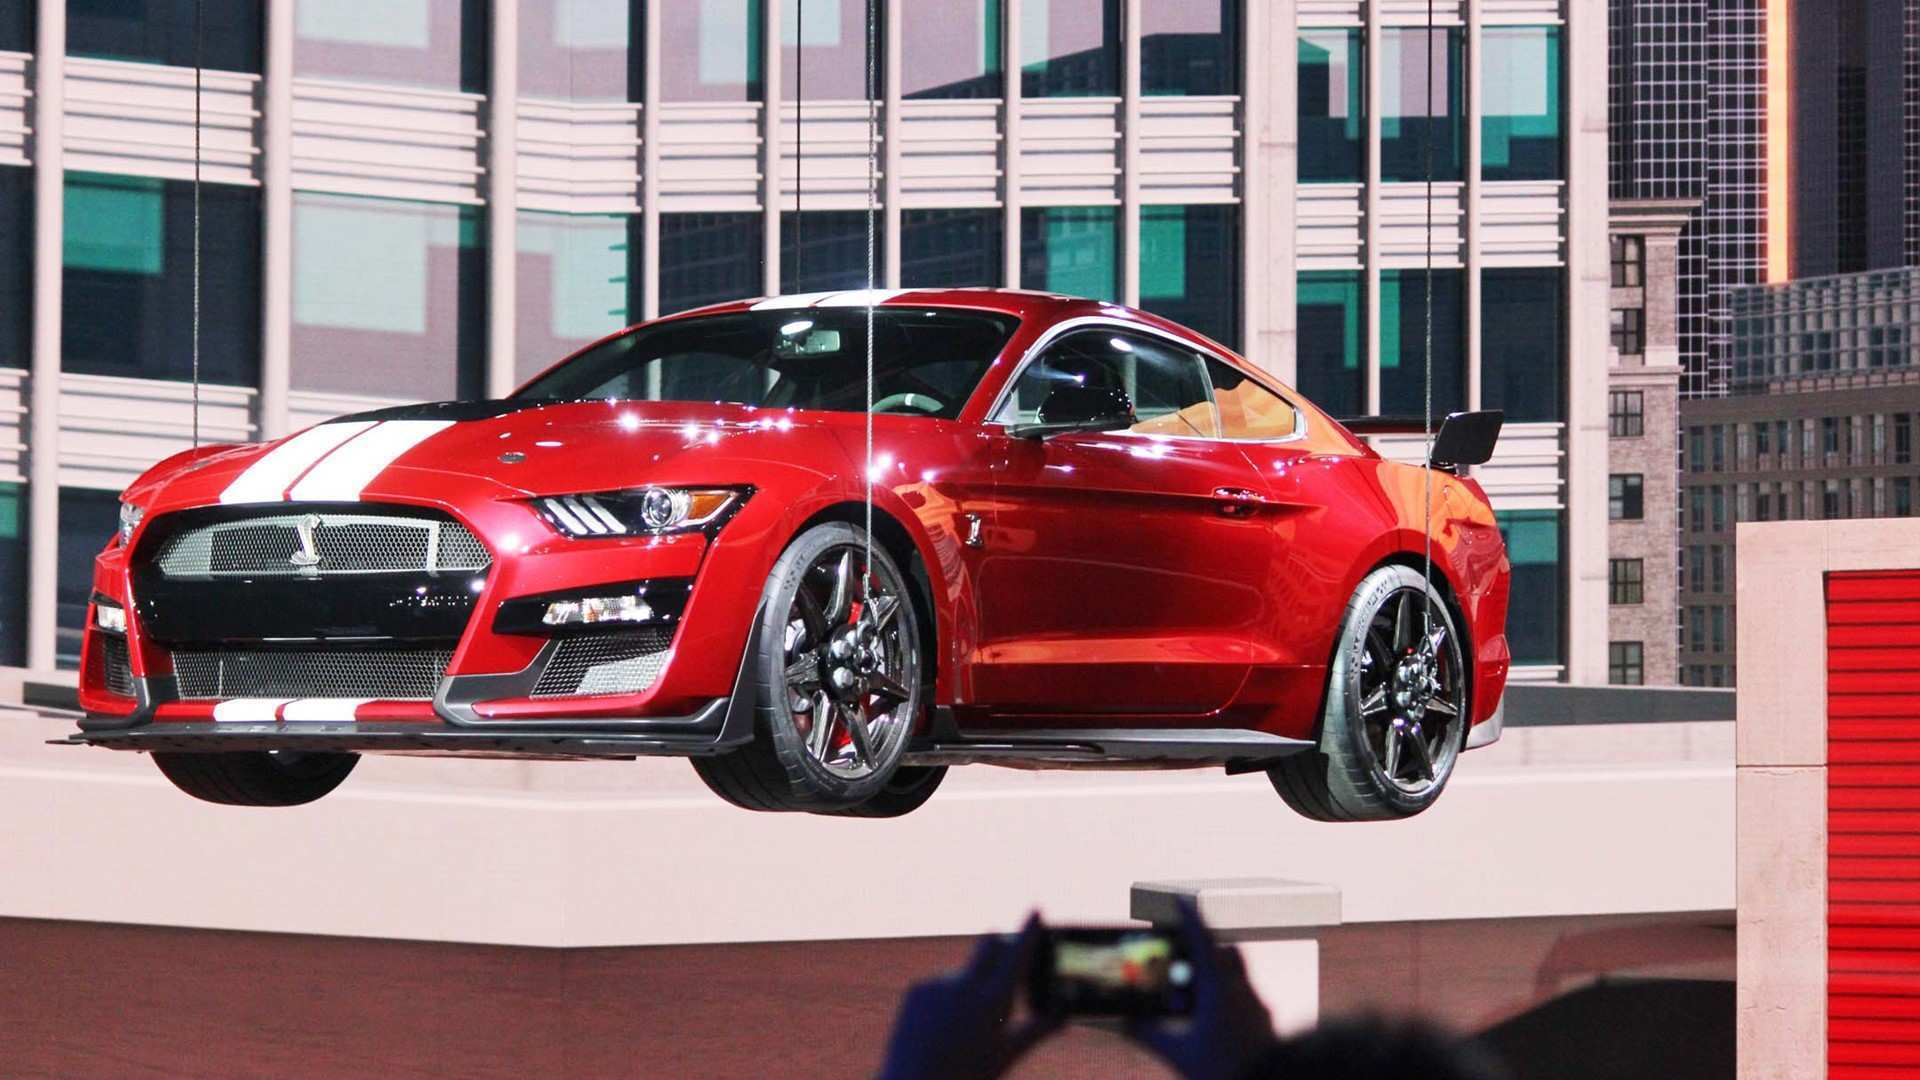 89 A 2020 Ford Mustang Concept